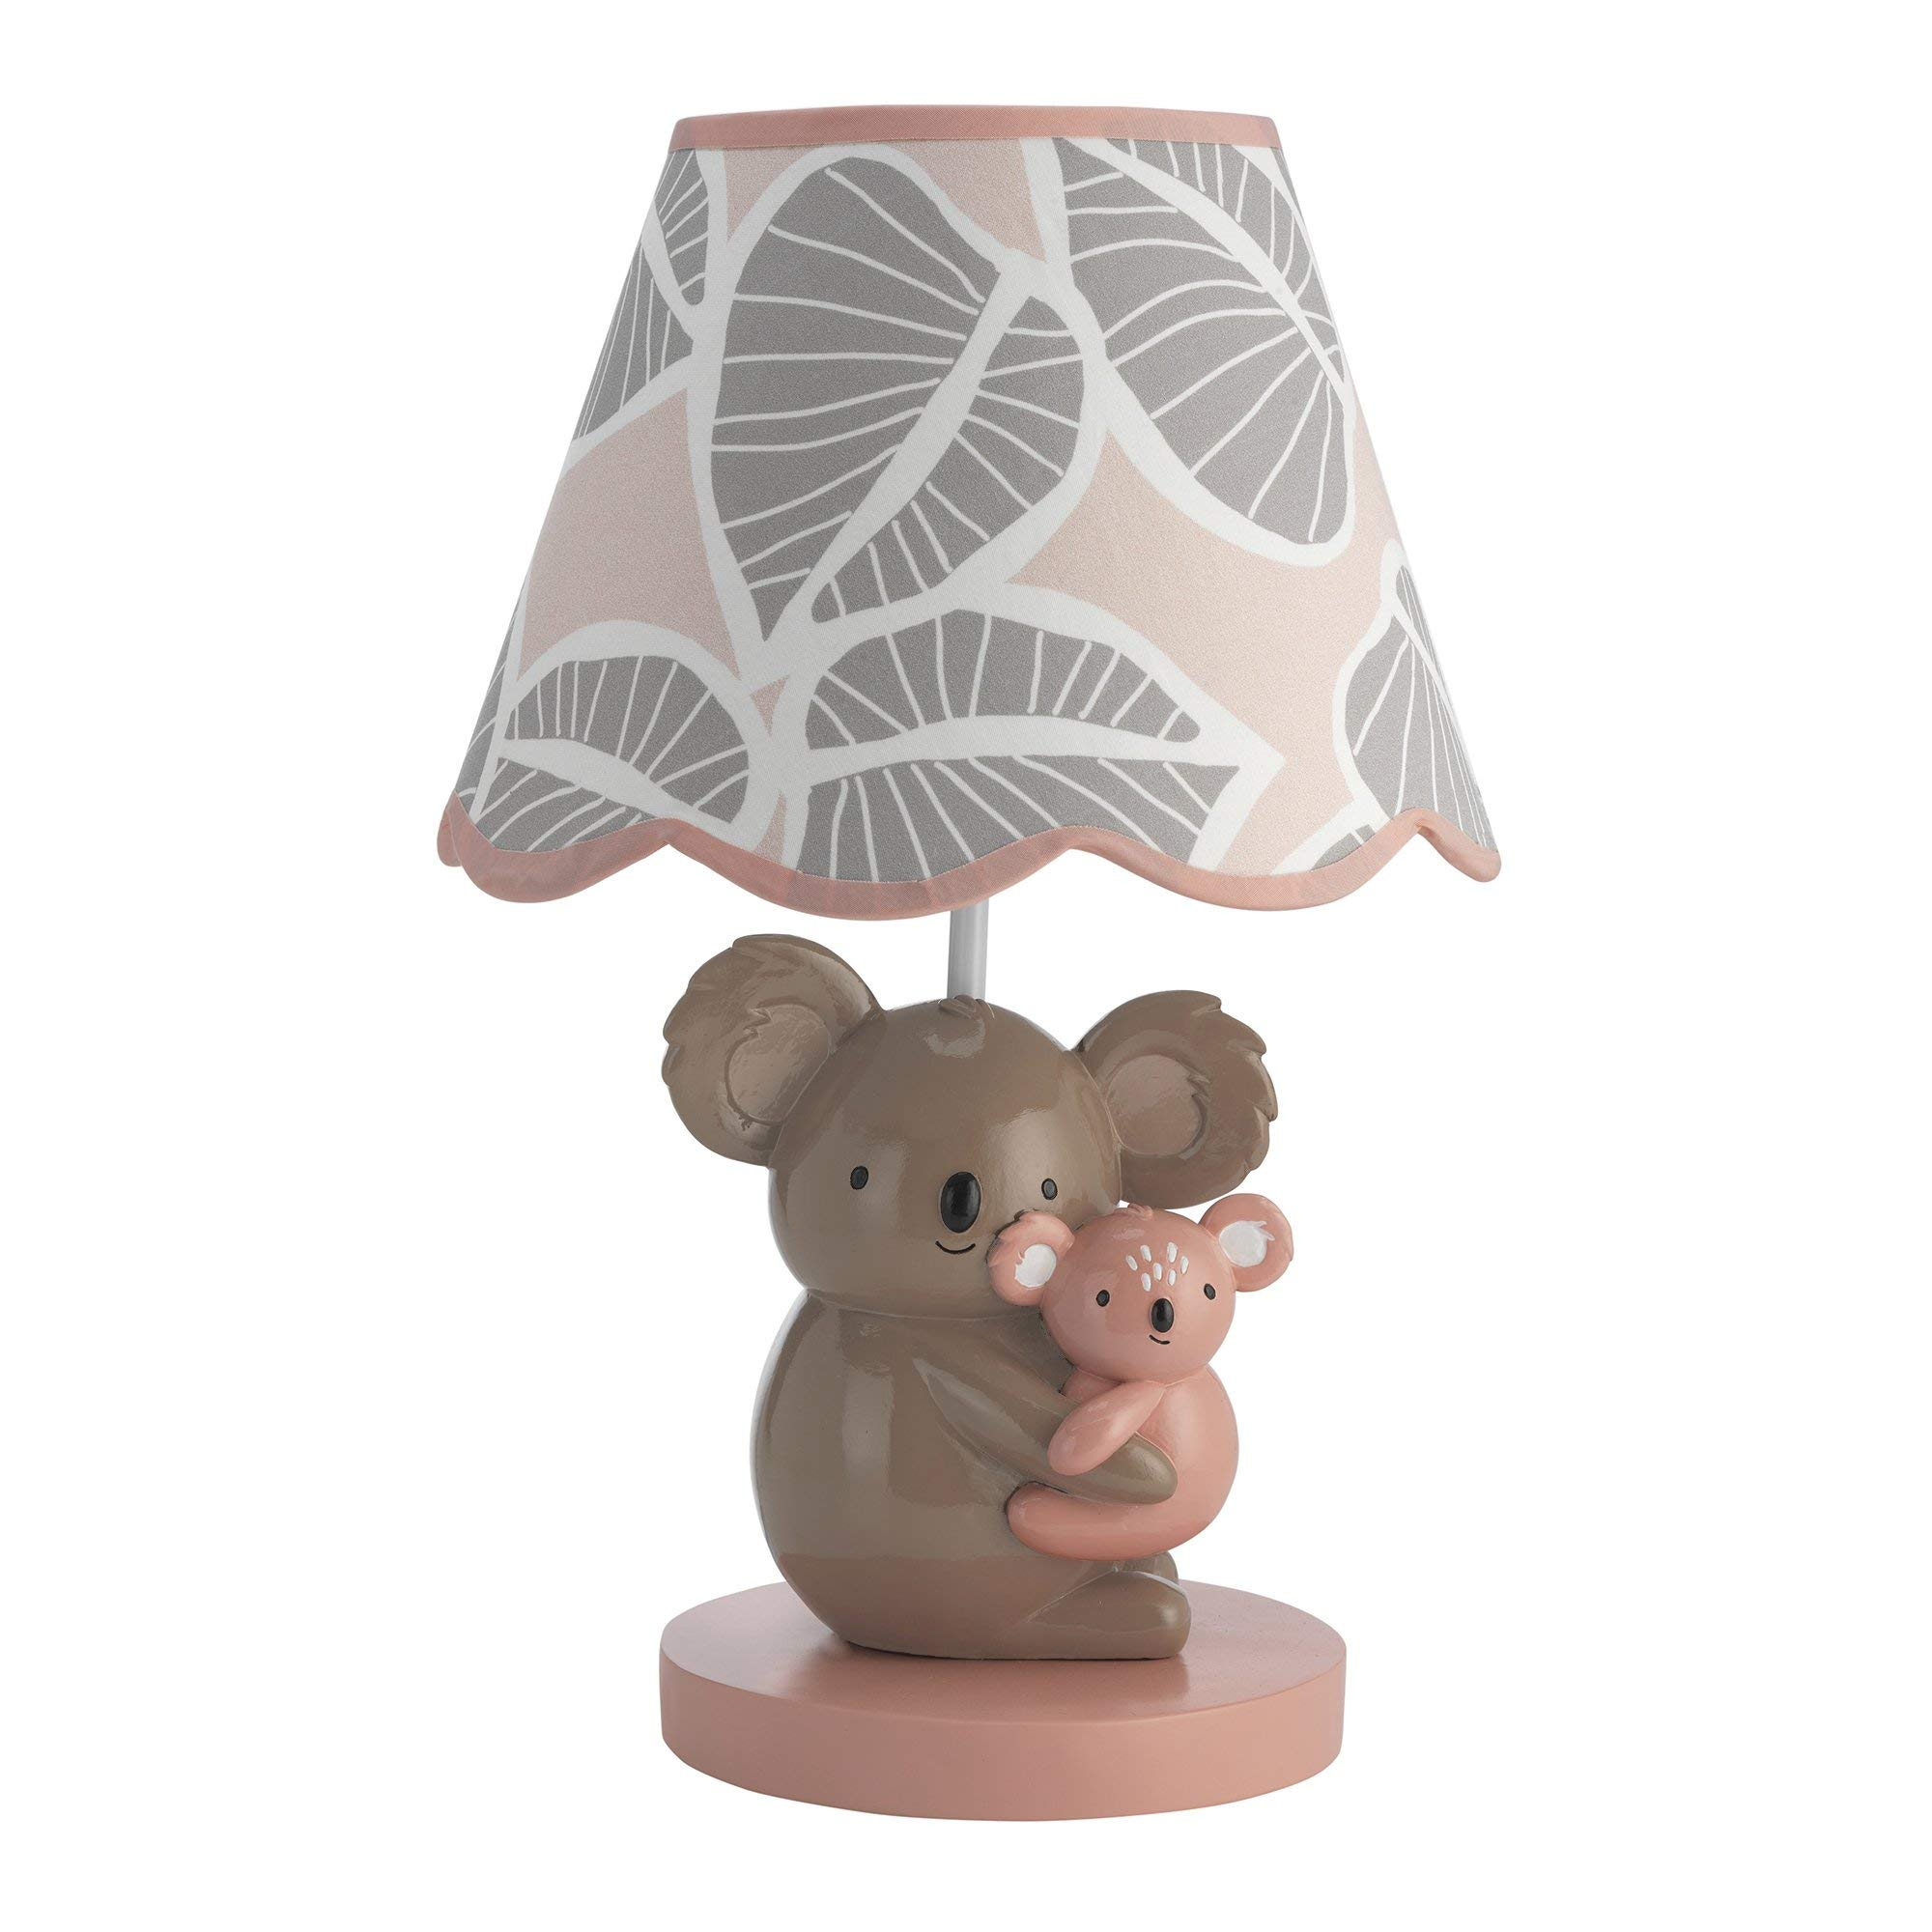 Lambs & Ivy Calypso Lamp with Shade & Bulb - Pink, Gray, Brown, Animals, Jungle, Outdoors, Koala